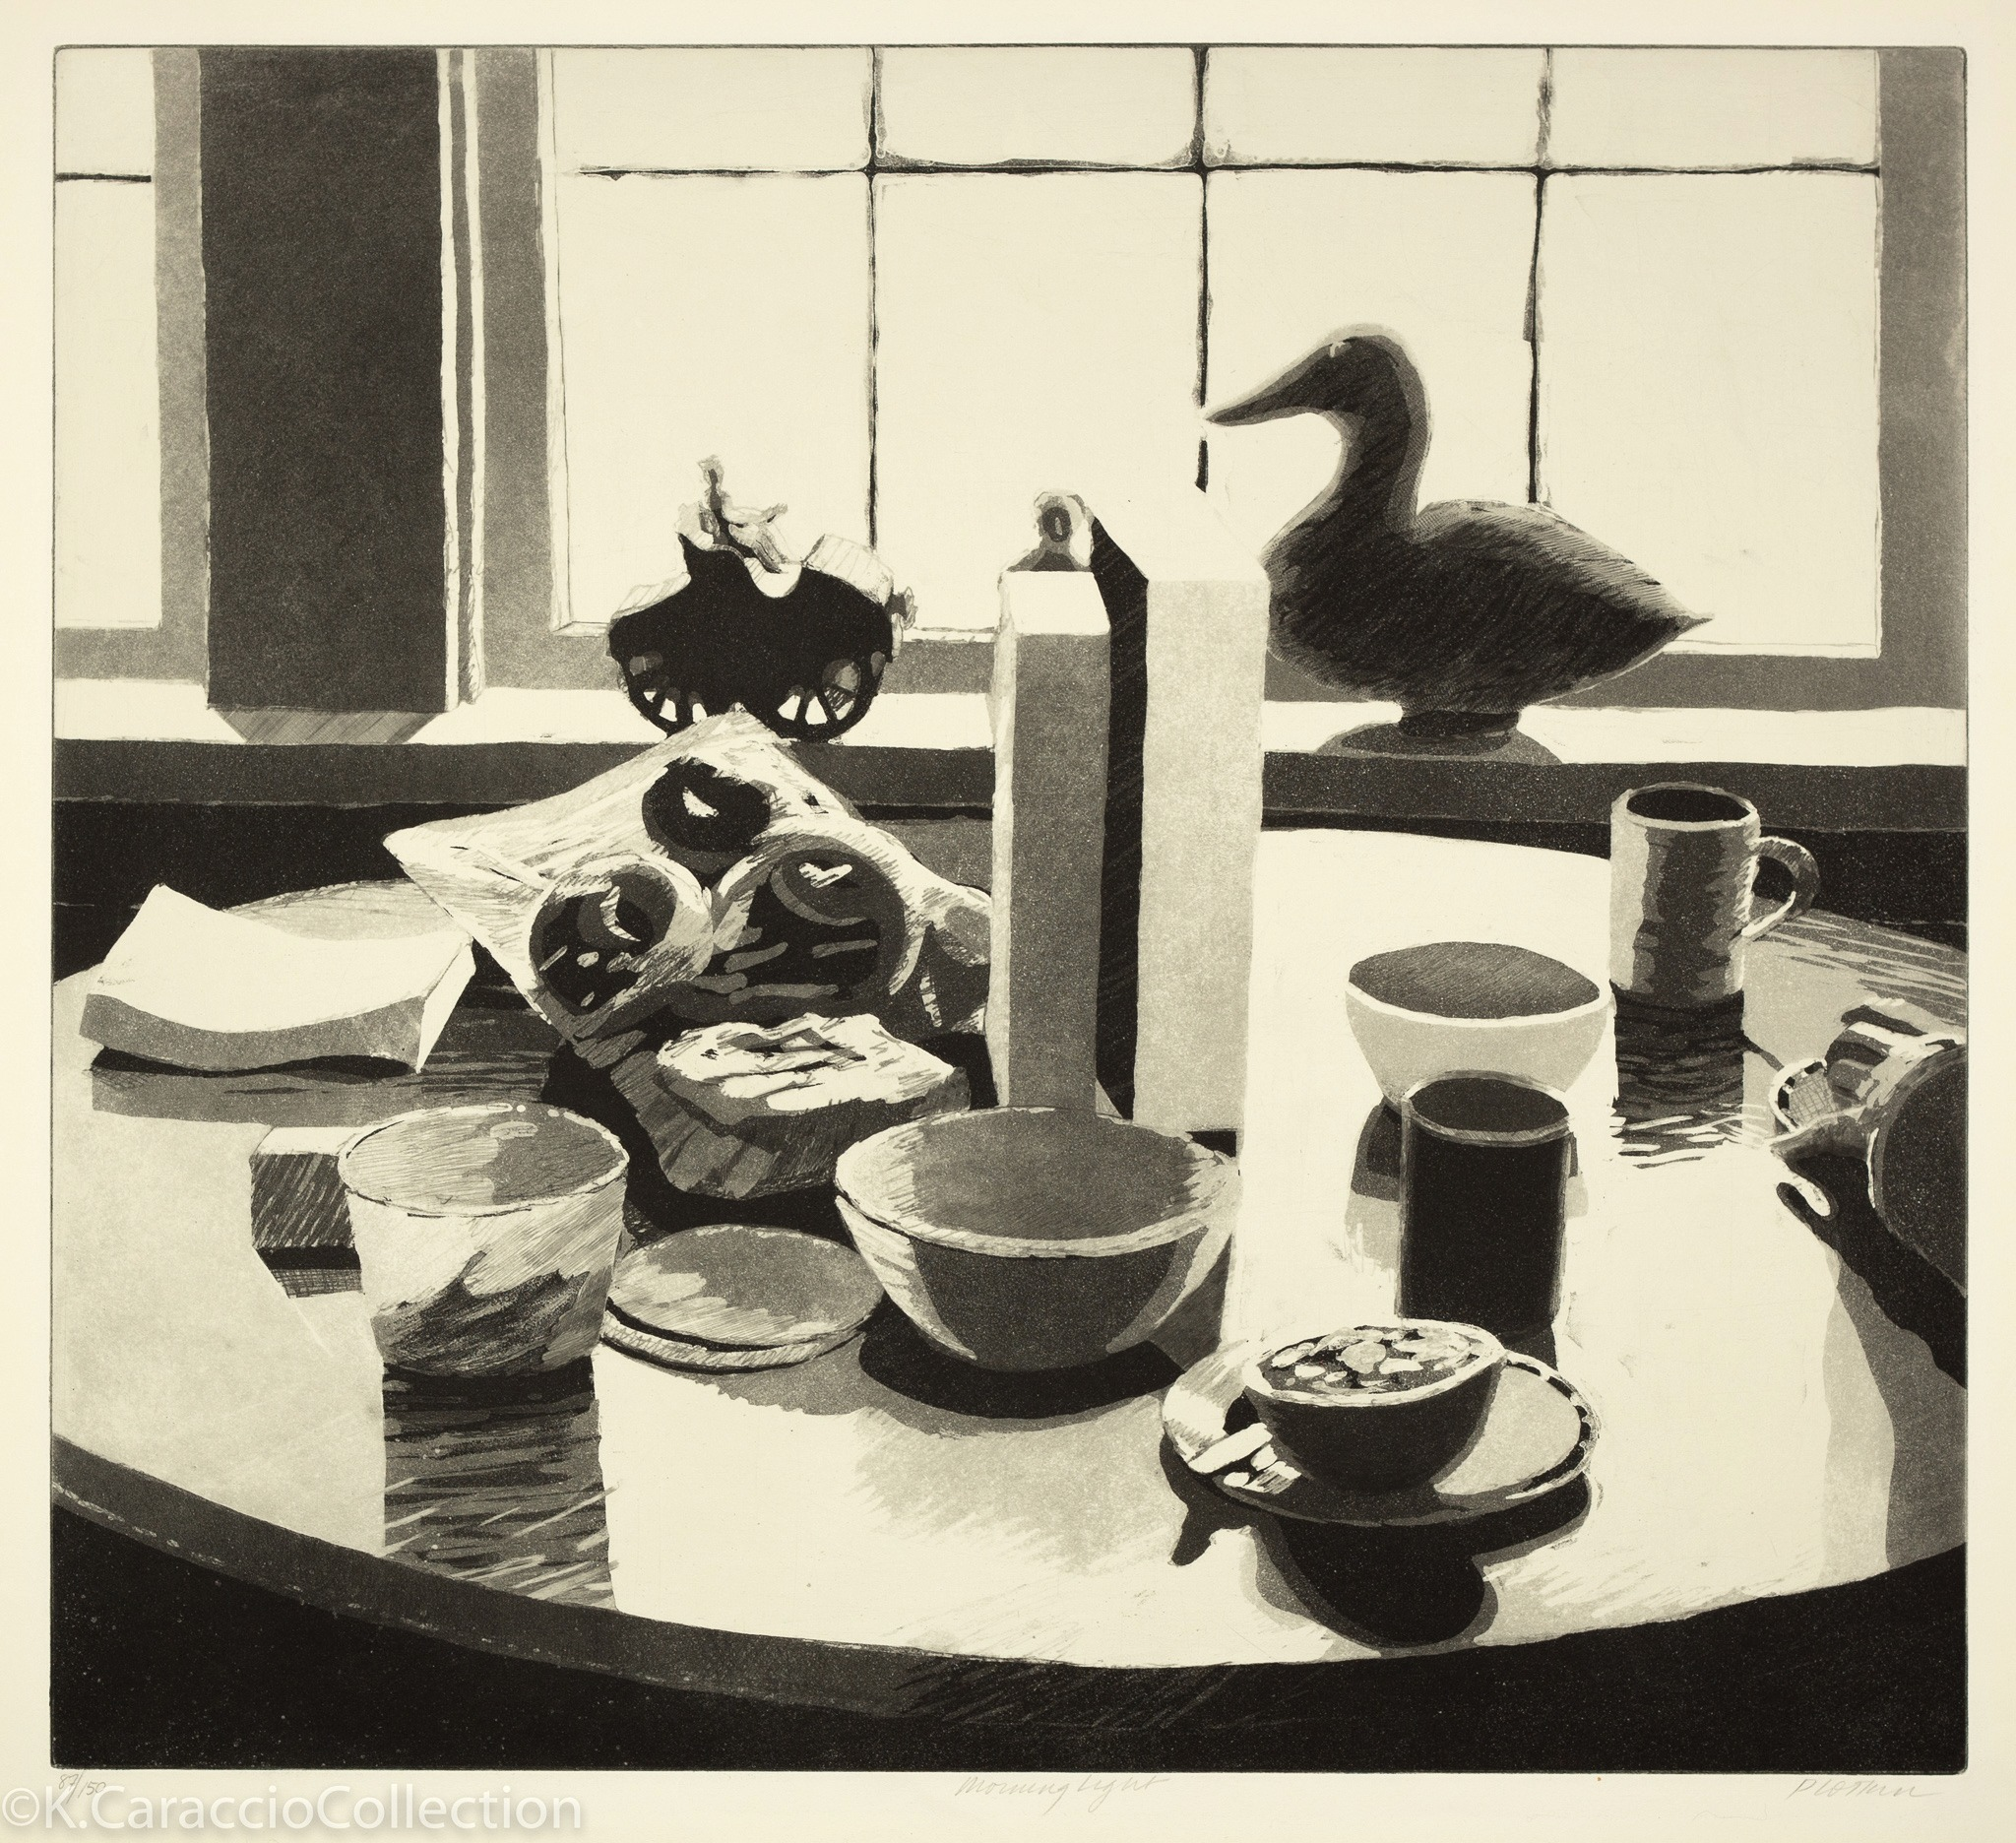 Morning Light, 1975